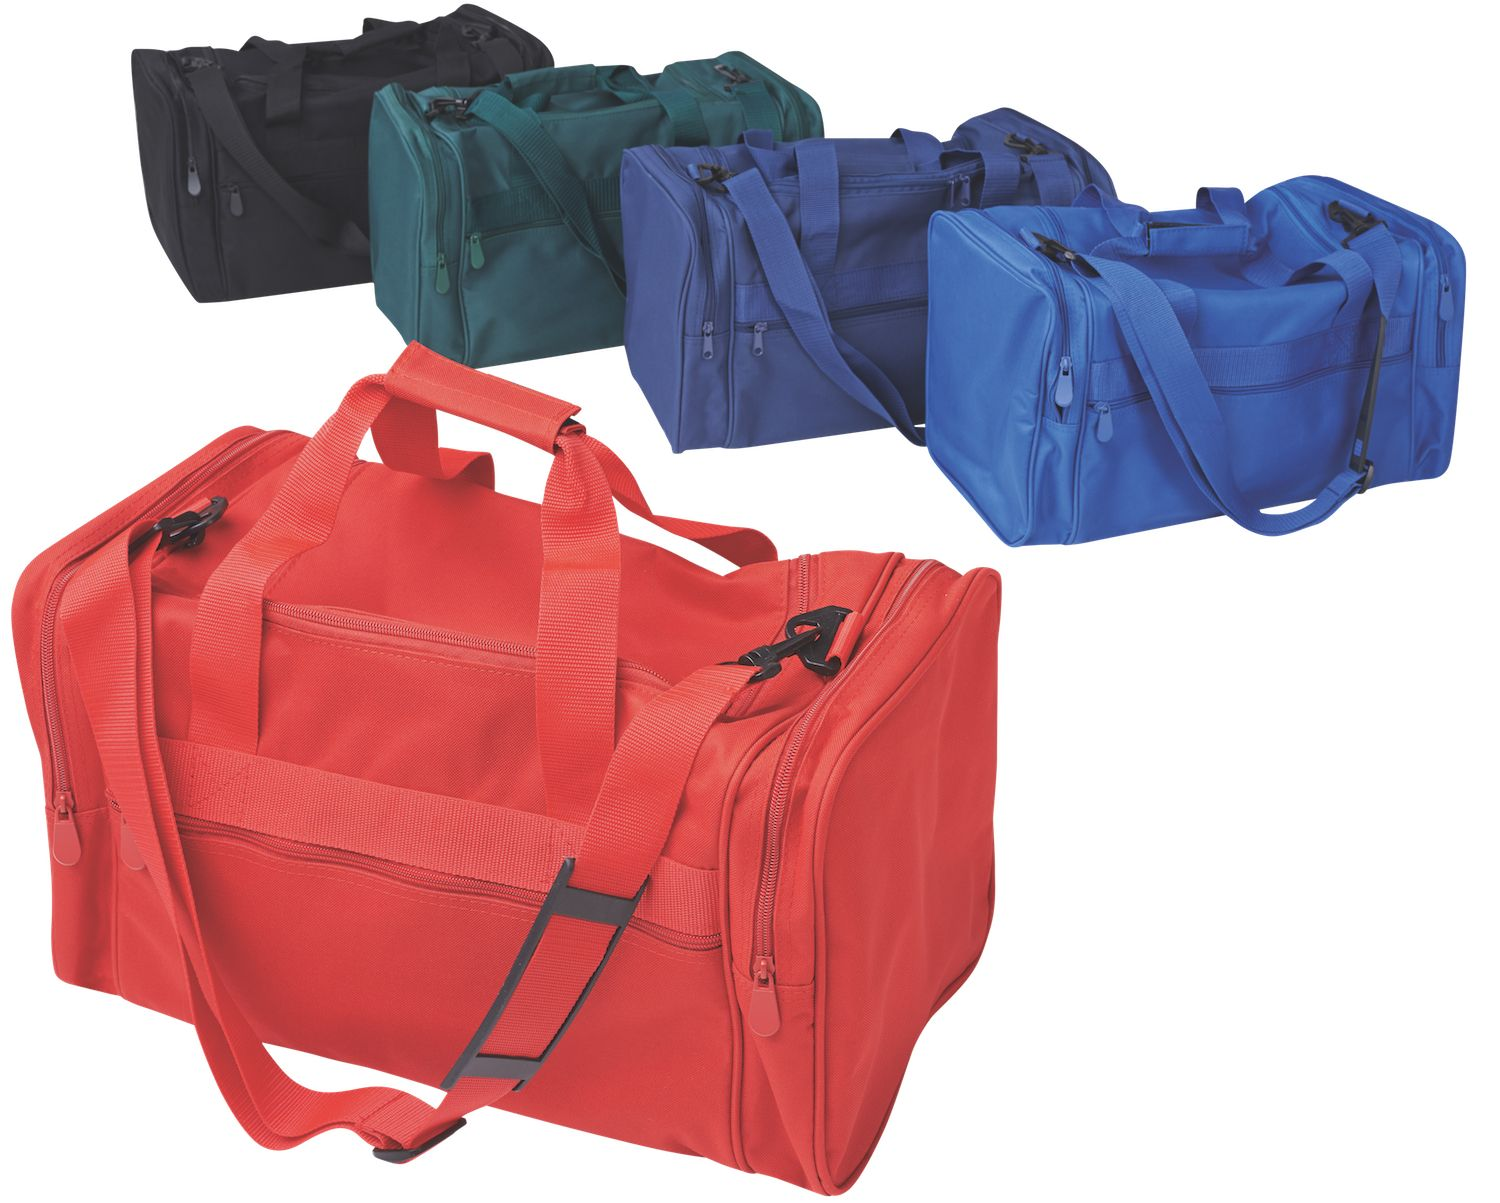 Gear Bag – Made To Order – Min Of 12